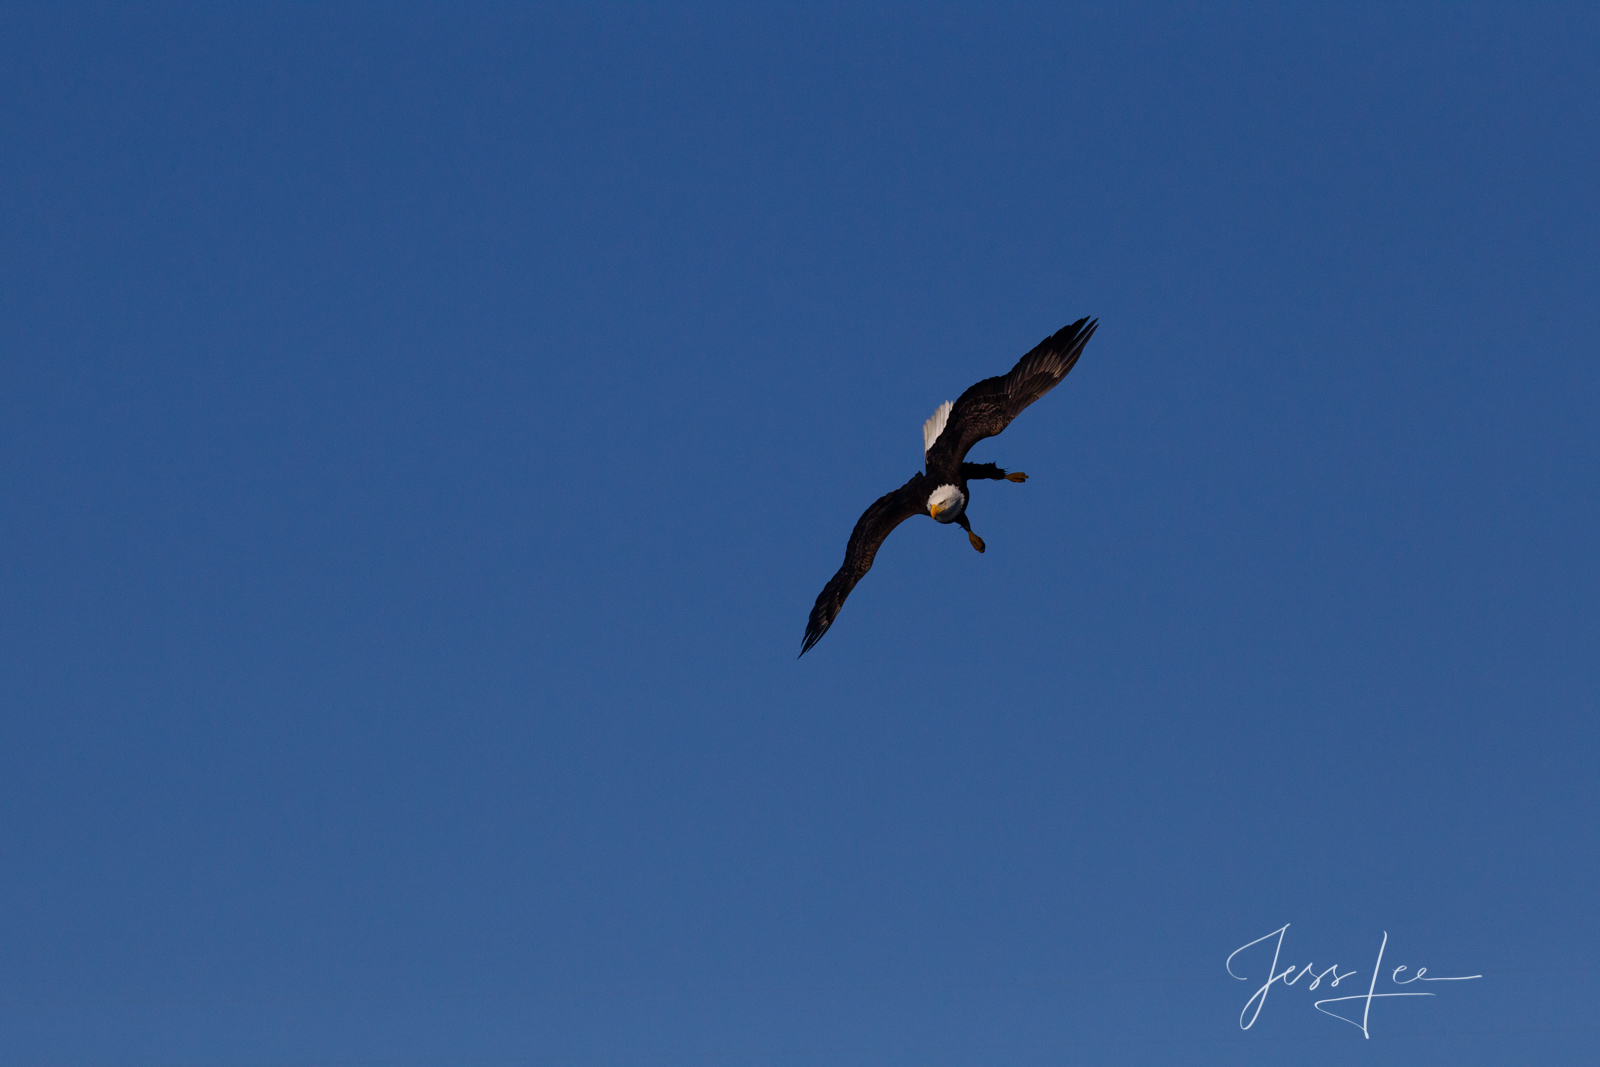 Bring home the power and beauty of the amazing fine art American Bald Eagle photograph Out There by Jess Lee from his Wildlife...